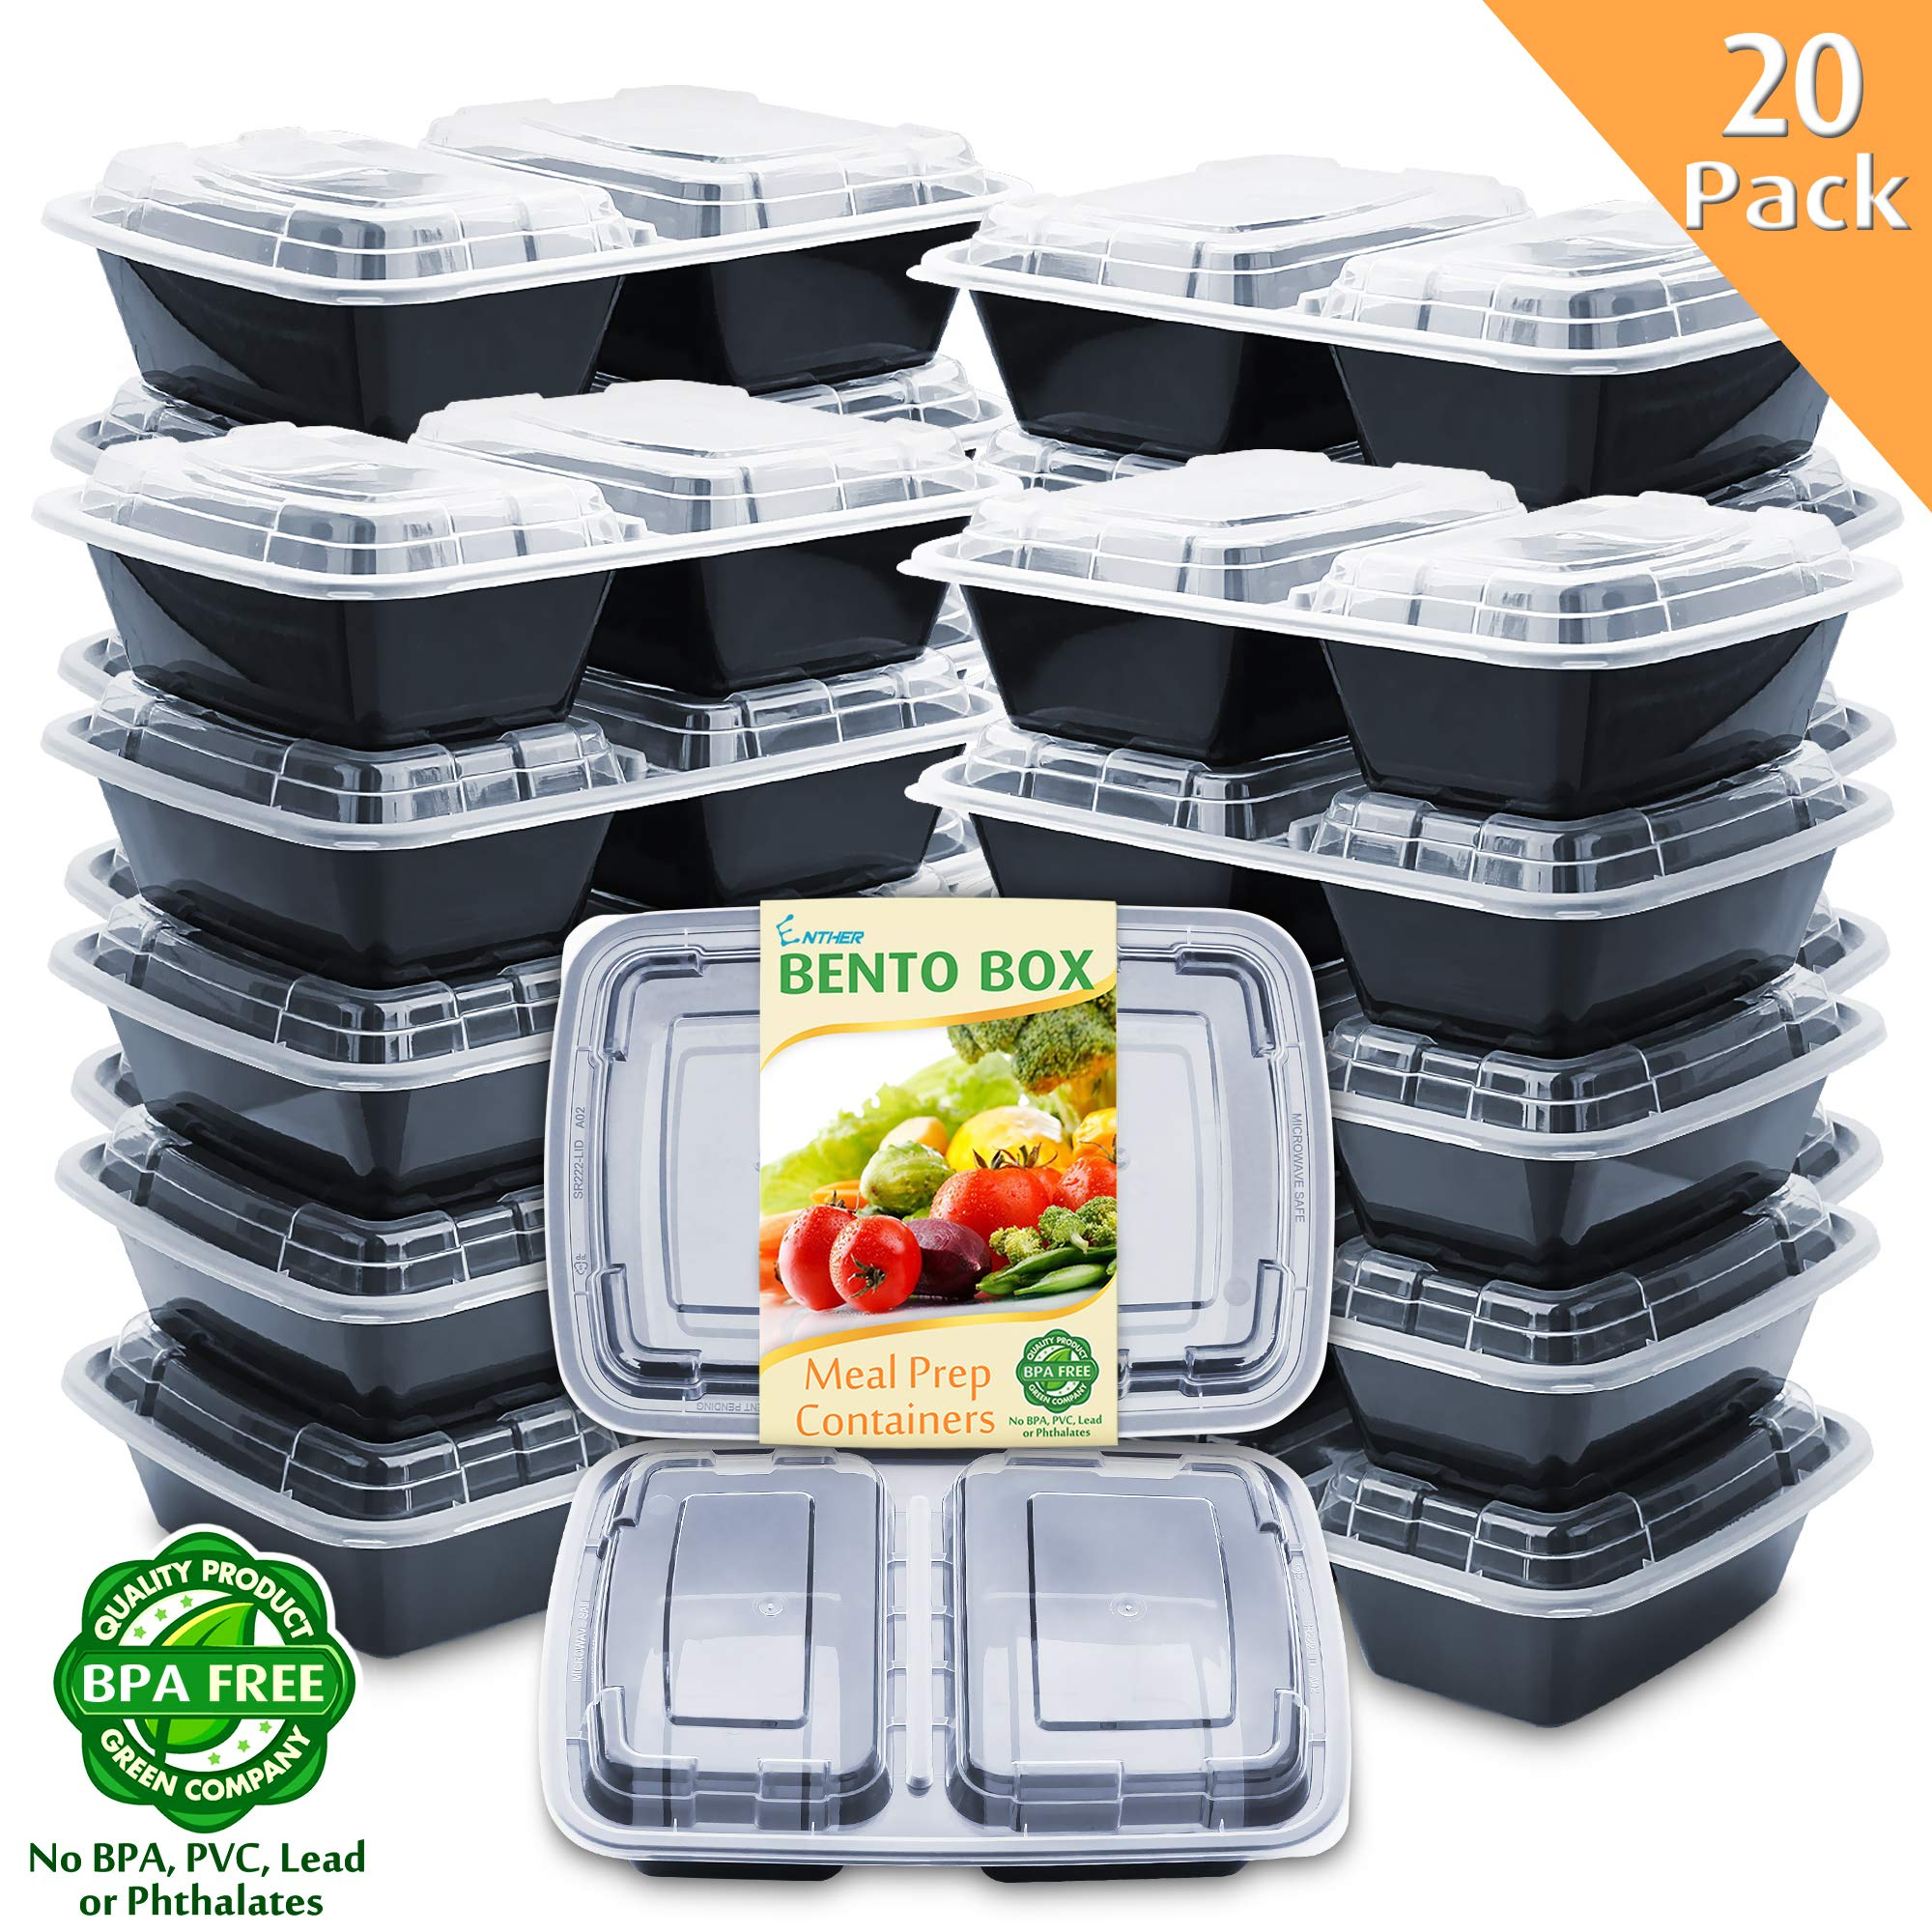 Enther Meal Prep Containers [20 Pack] 2 Compartment with Lids, Food Storage Bento Box | BPA Free | Stackable | Reusable Lunch Boxes, Microwave/Dishwasher/Freezer Safe, Portion Control (32 oz) by Enther